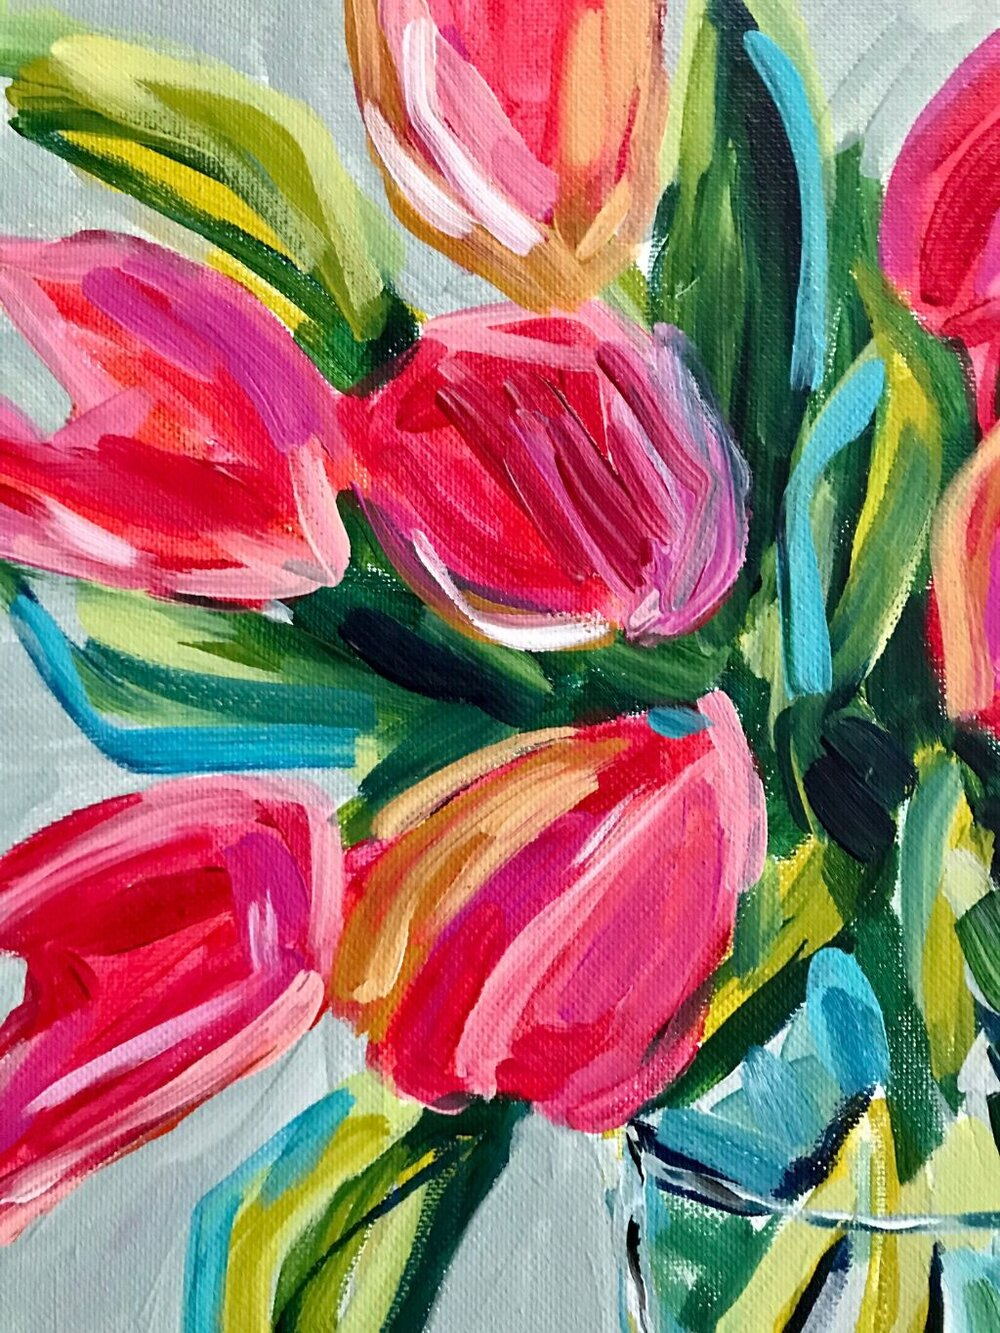 Flower Painting Tutorial: How to Paint Tulips on Canvas with Acrylic Paint  Learn the easy way to paint flowers step by step.  This tutorial is easy to follow even for beginner artists!  #howto #paintingtutorial